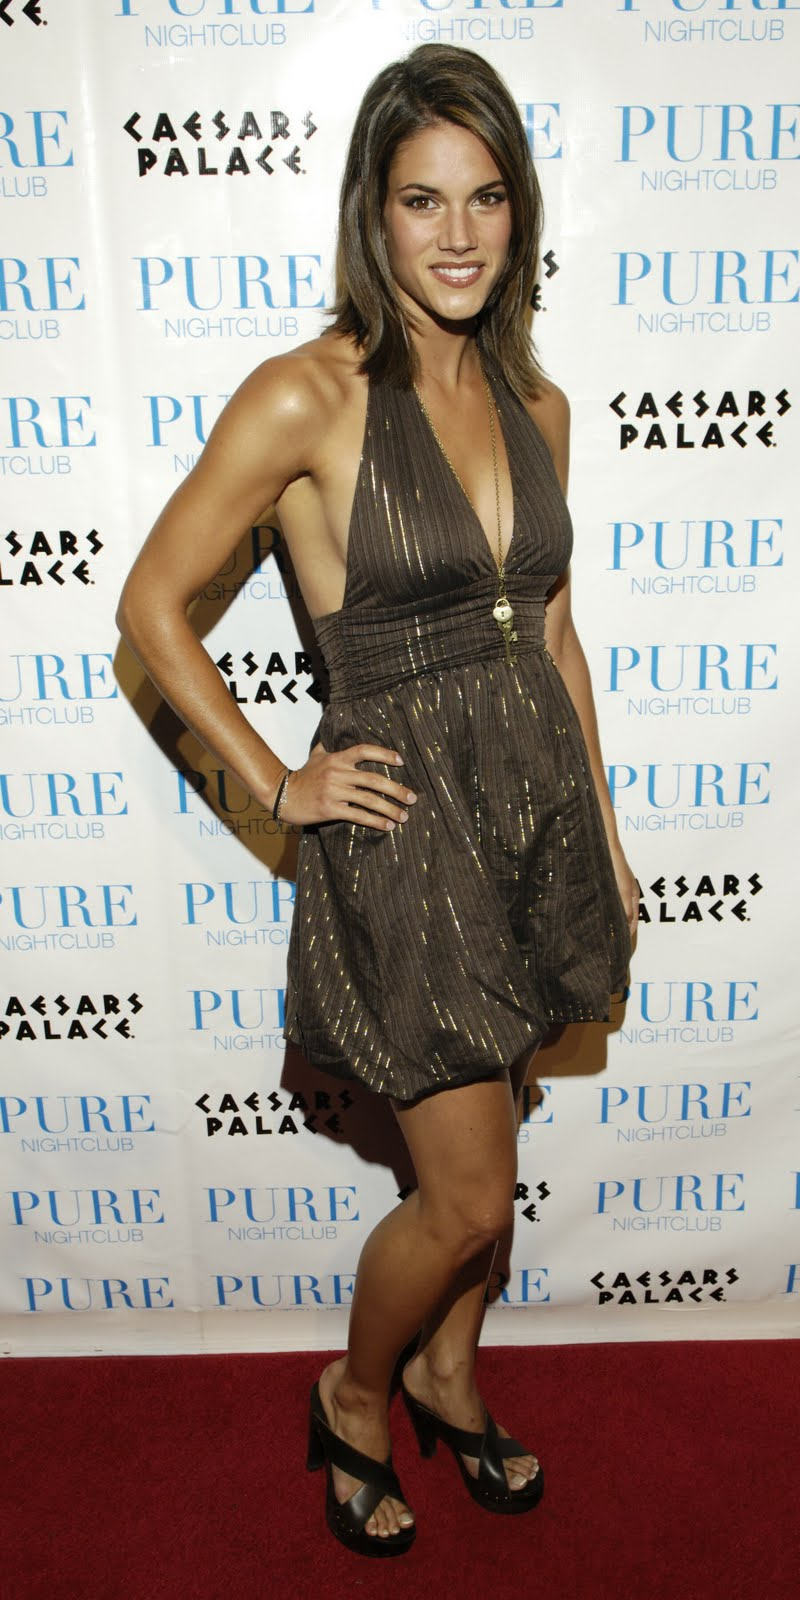 Missy Peregrym Is A Sexy Canadian Actress And Former Fashion Model Featured In The Television Series Heroes And Reaper